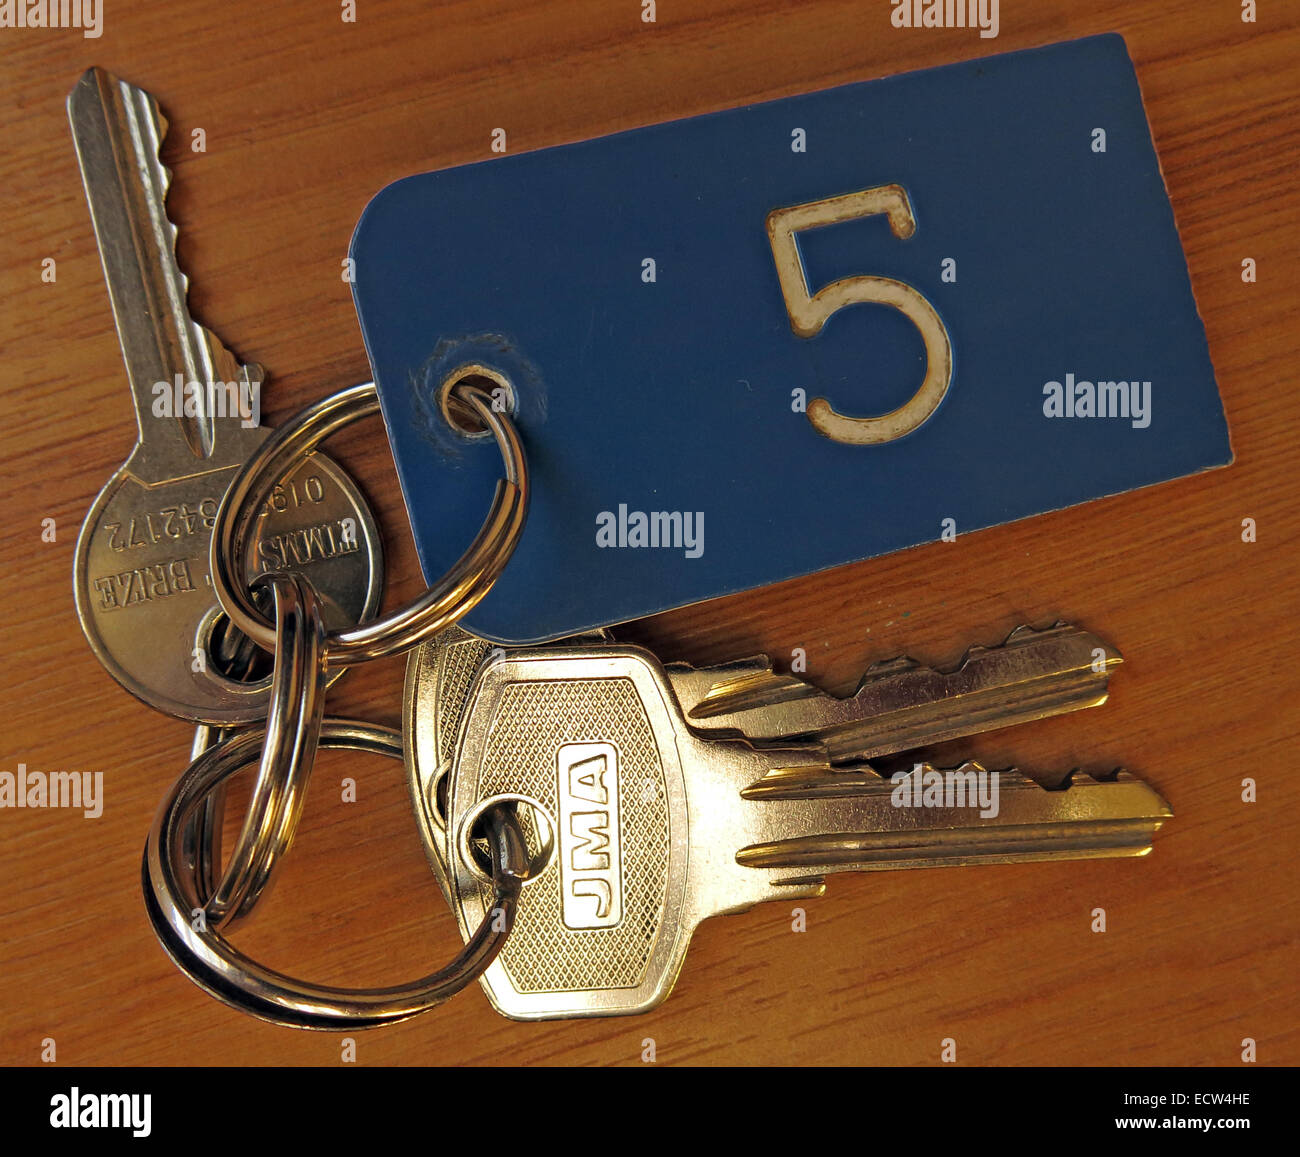 Bunch of keys for Room number 5 Stock Photo